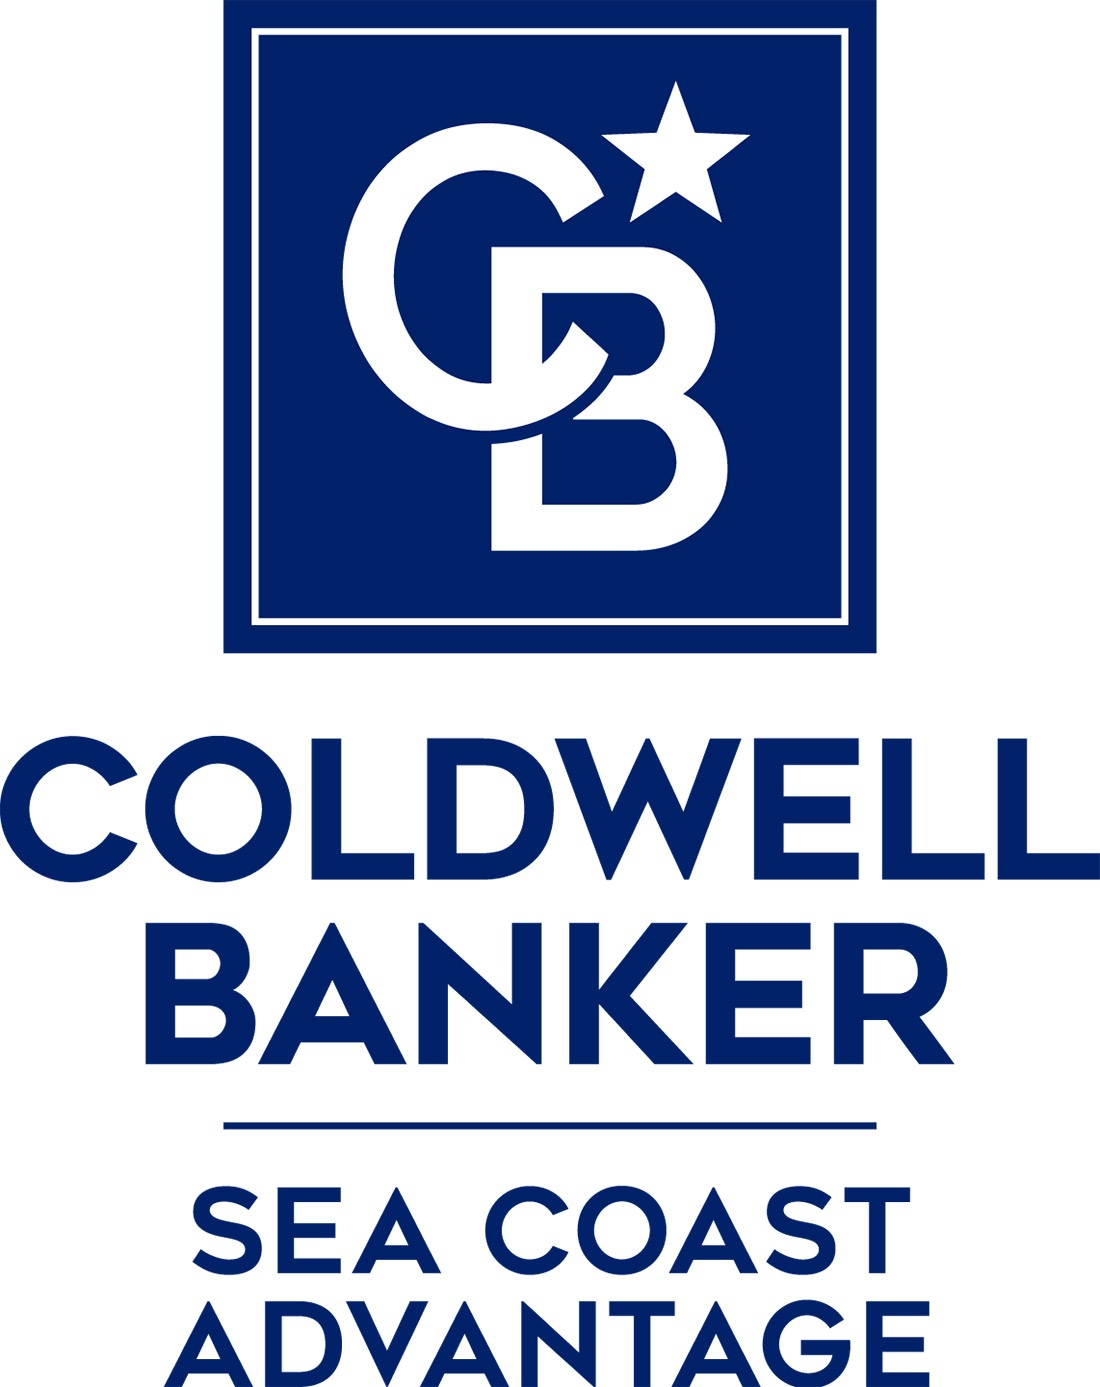 Coldwell Banker Sea Coast Advantage NC